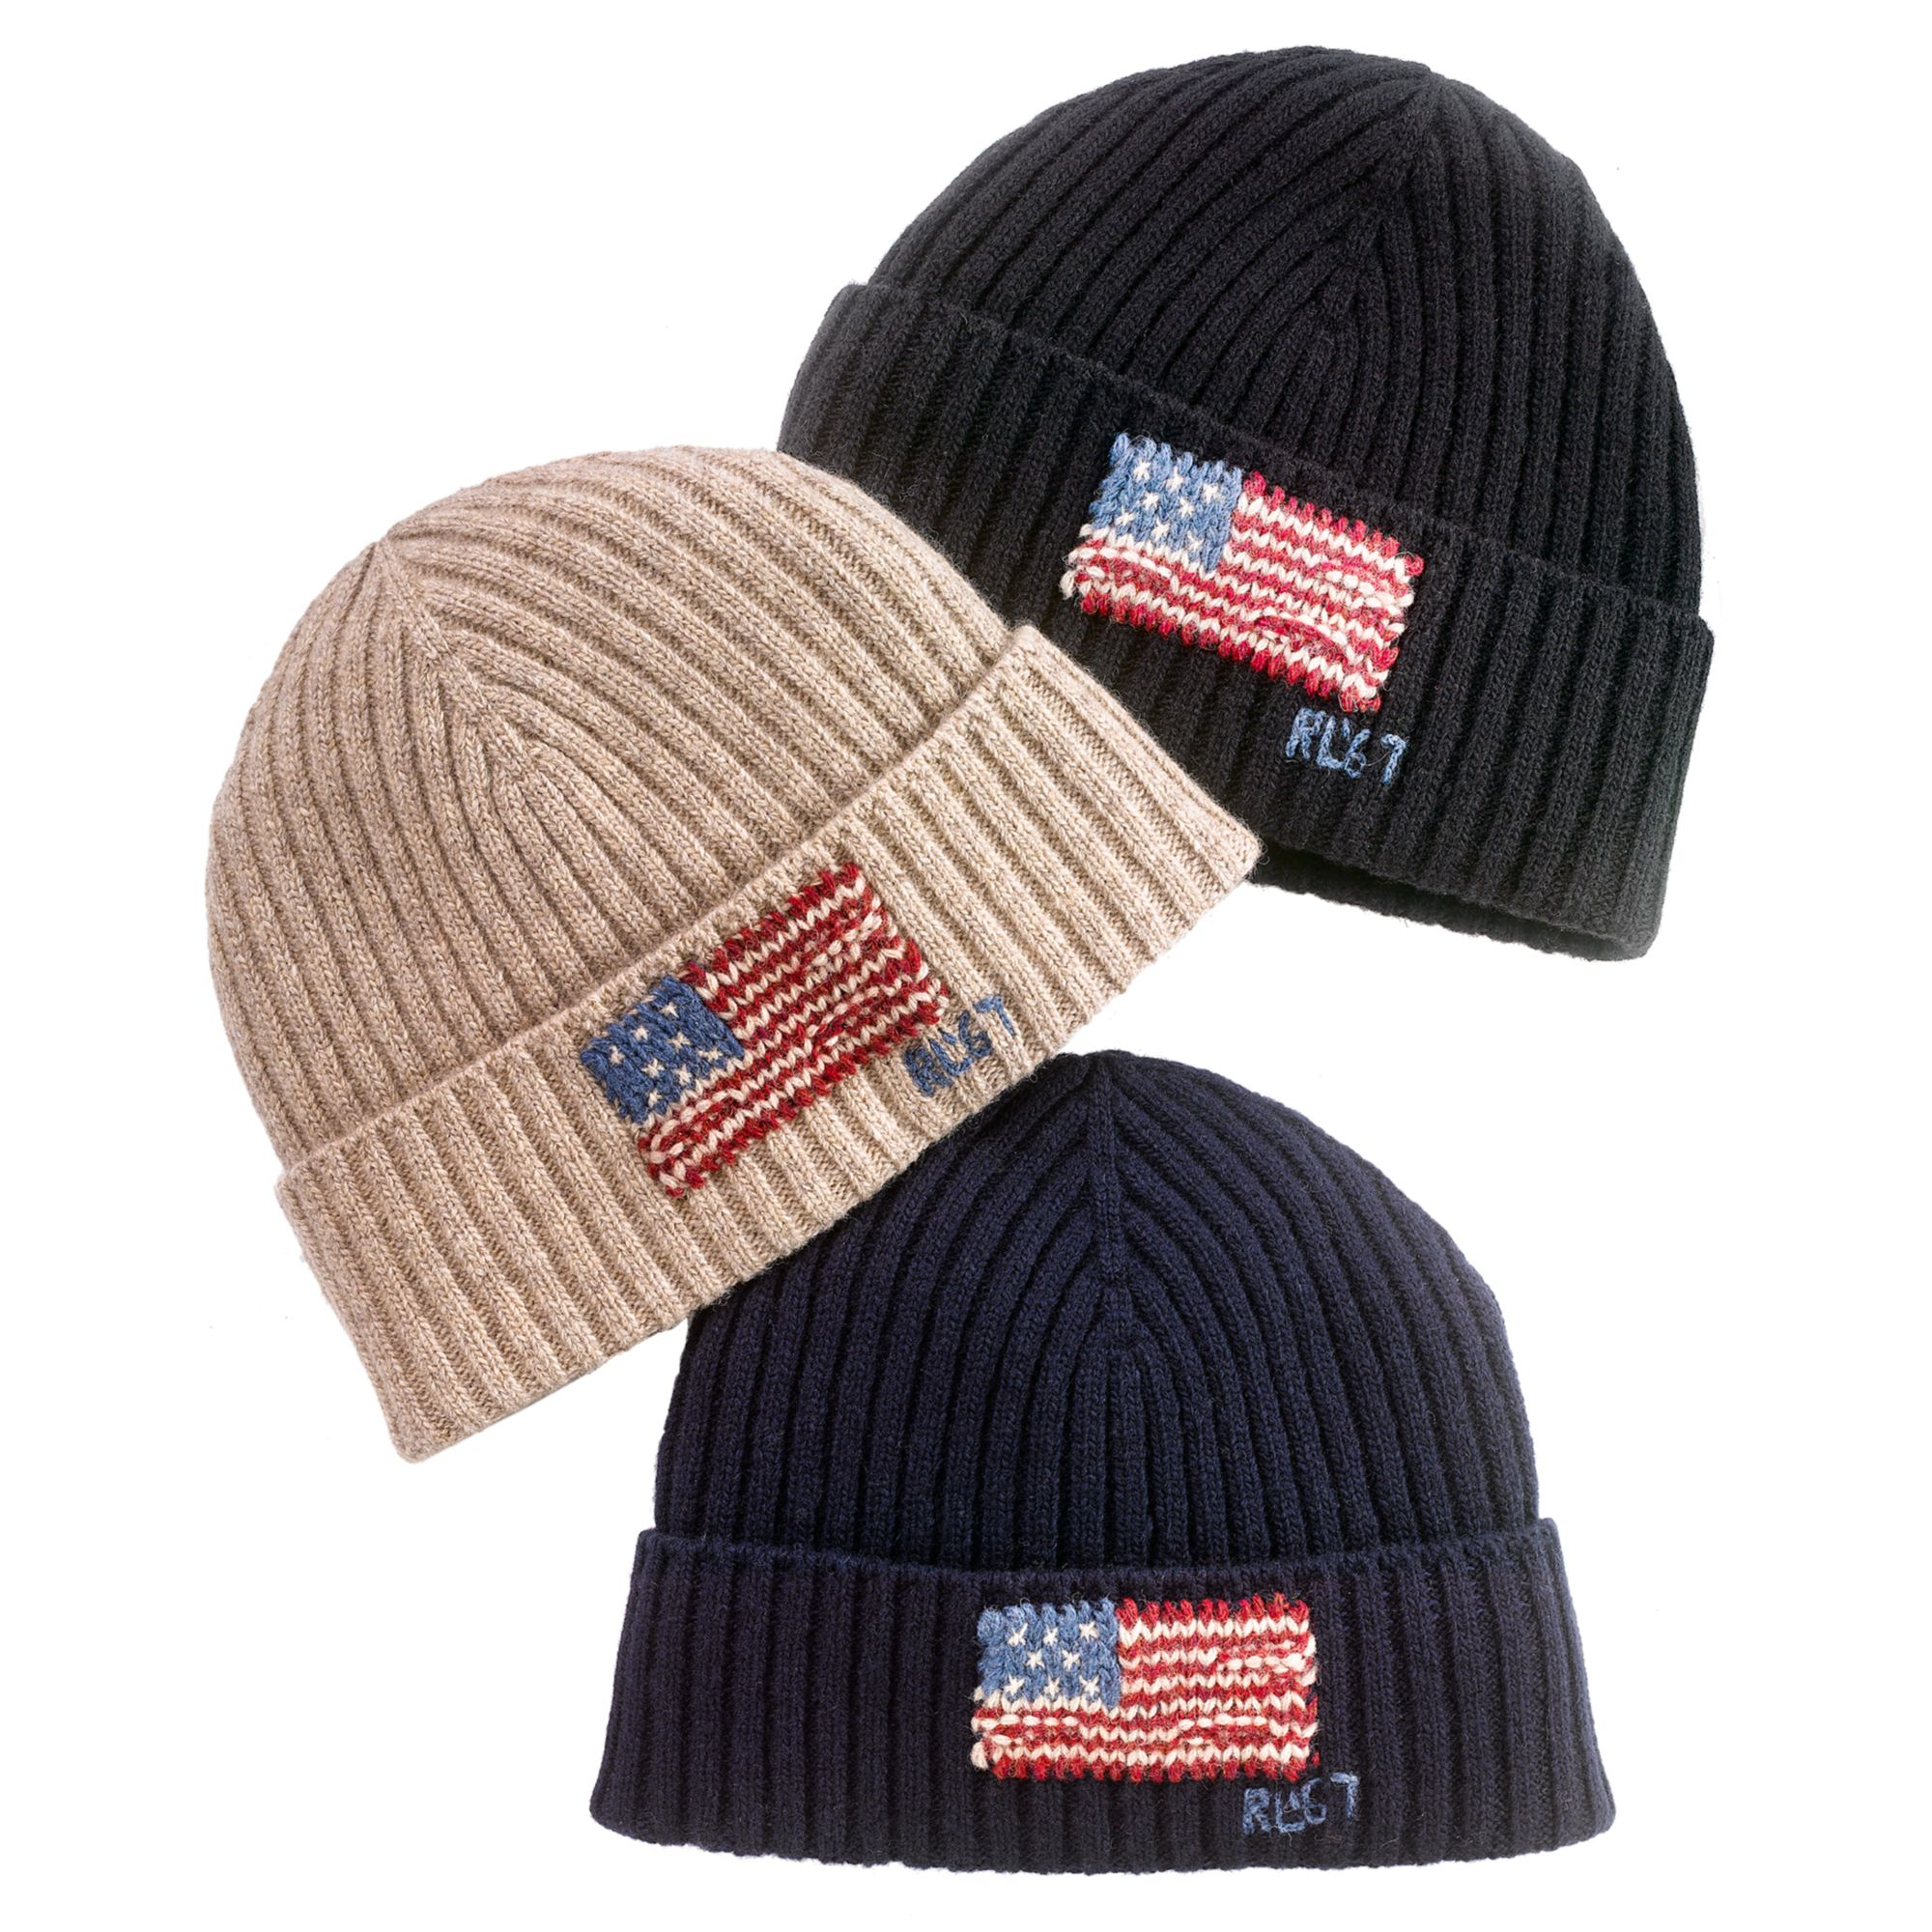 Lyst - Ralph Lauren American Flag Ribbed Beanie in Natural for Men 5eed56d7ece